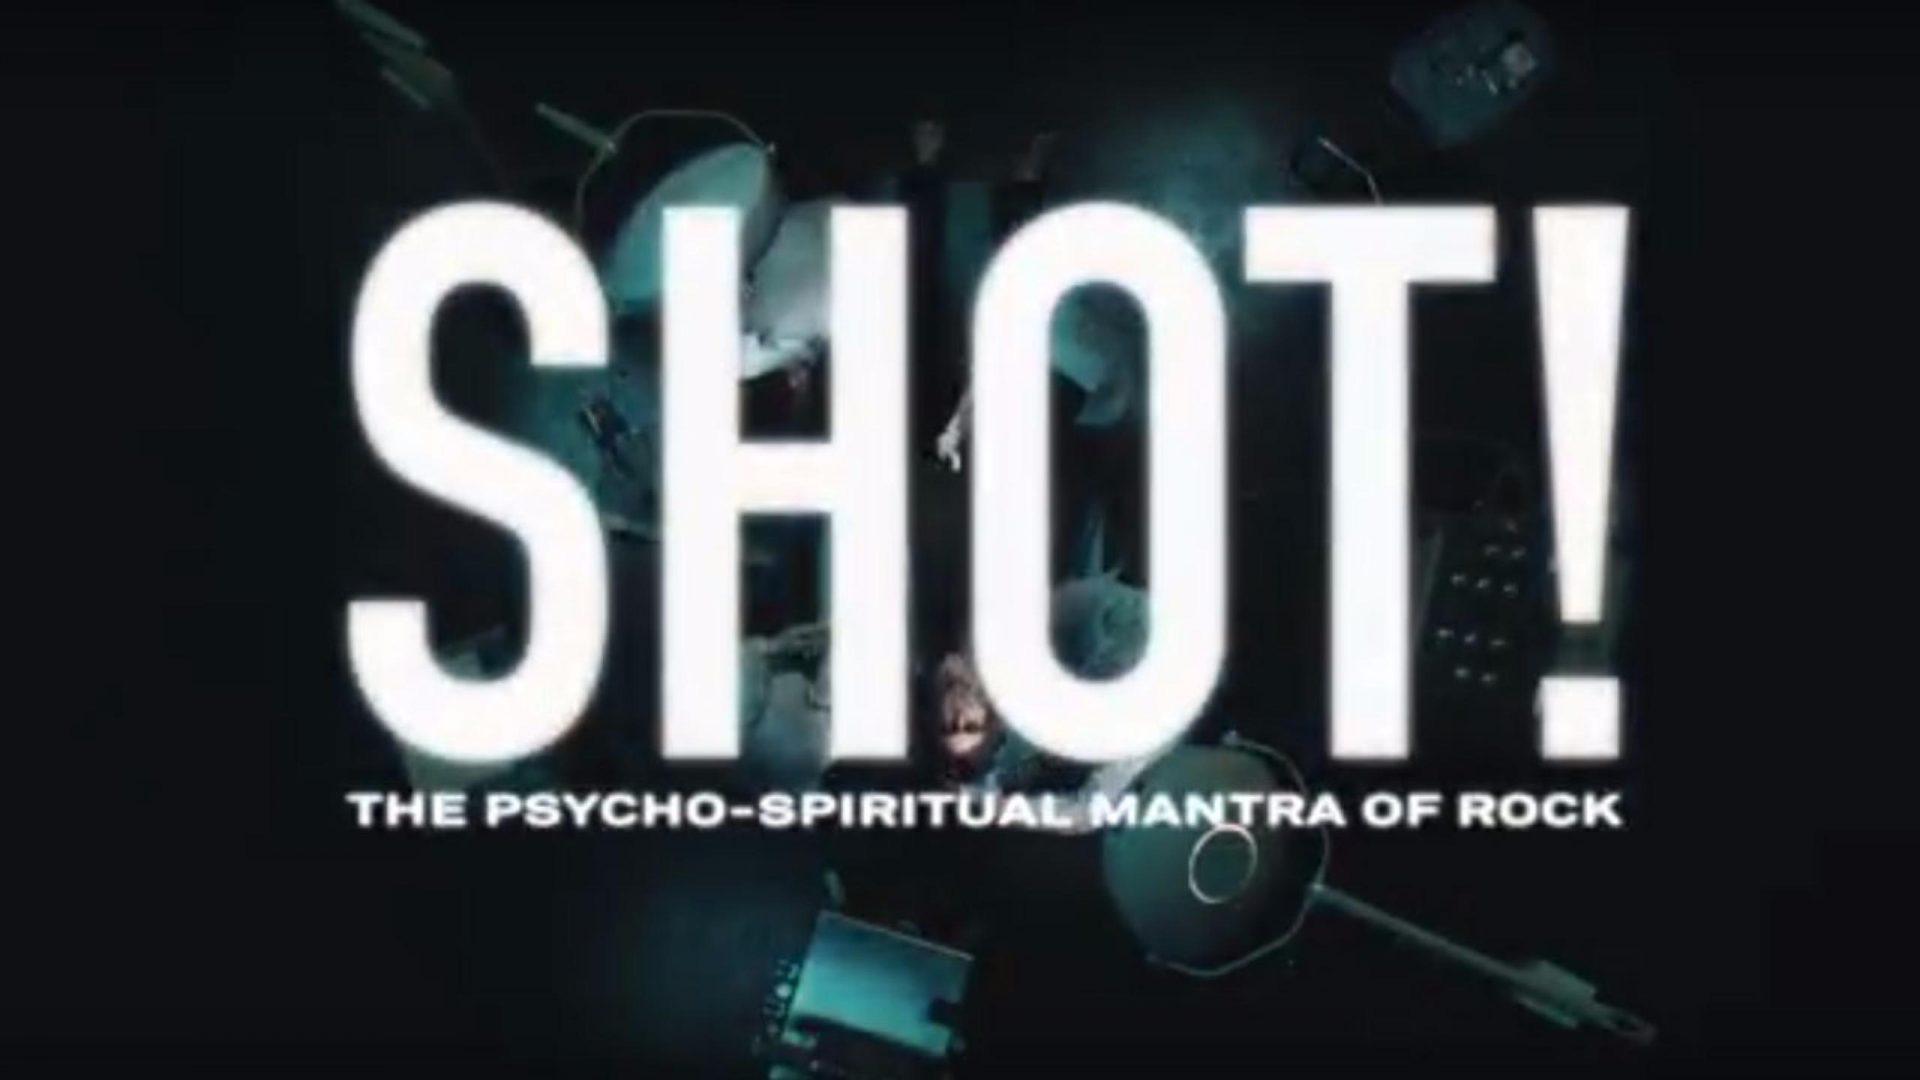 SHOT! The Psycho-Spiritual Mantra of Rock (Official Trailer)